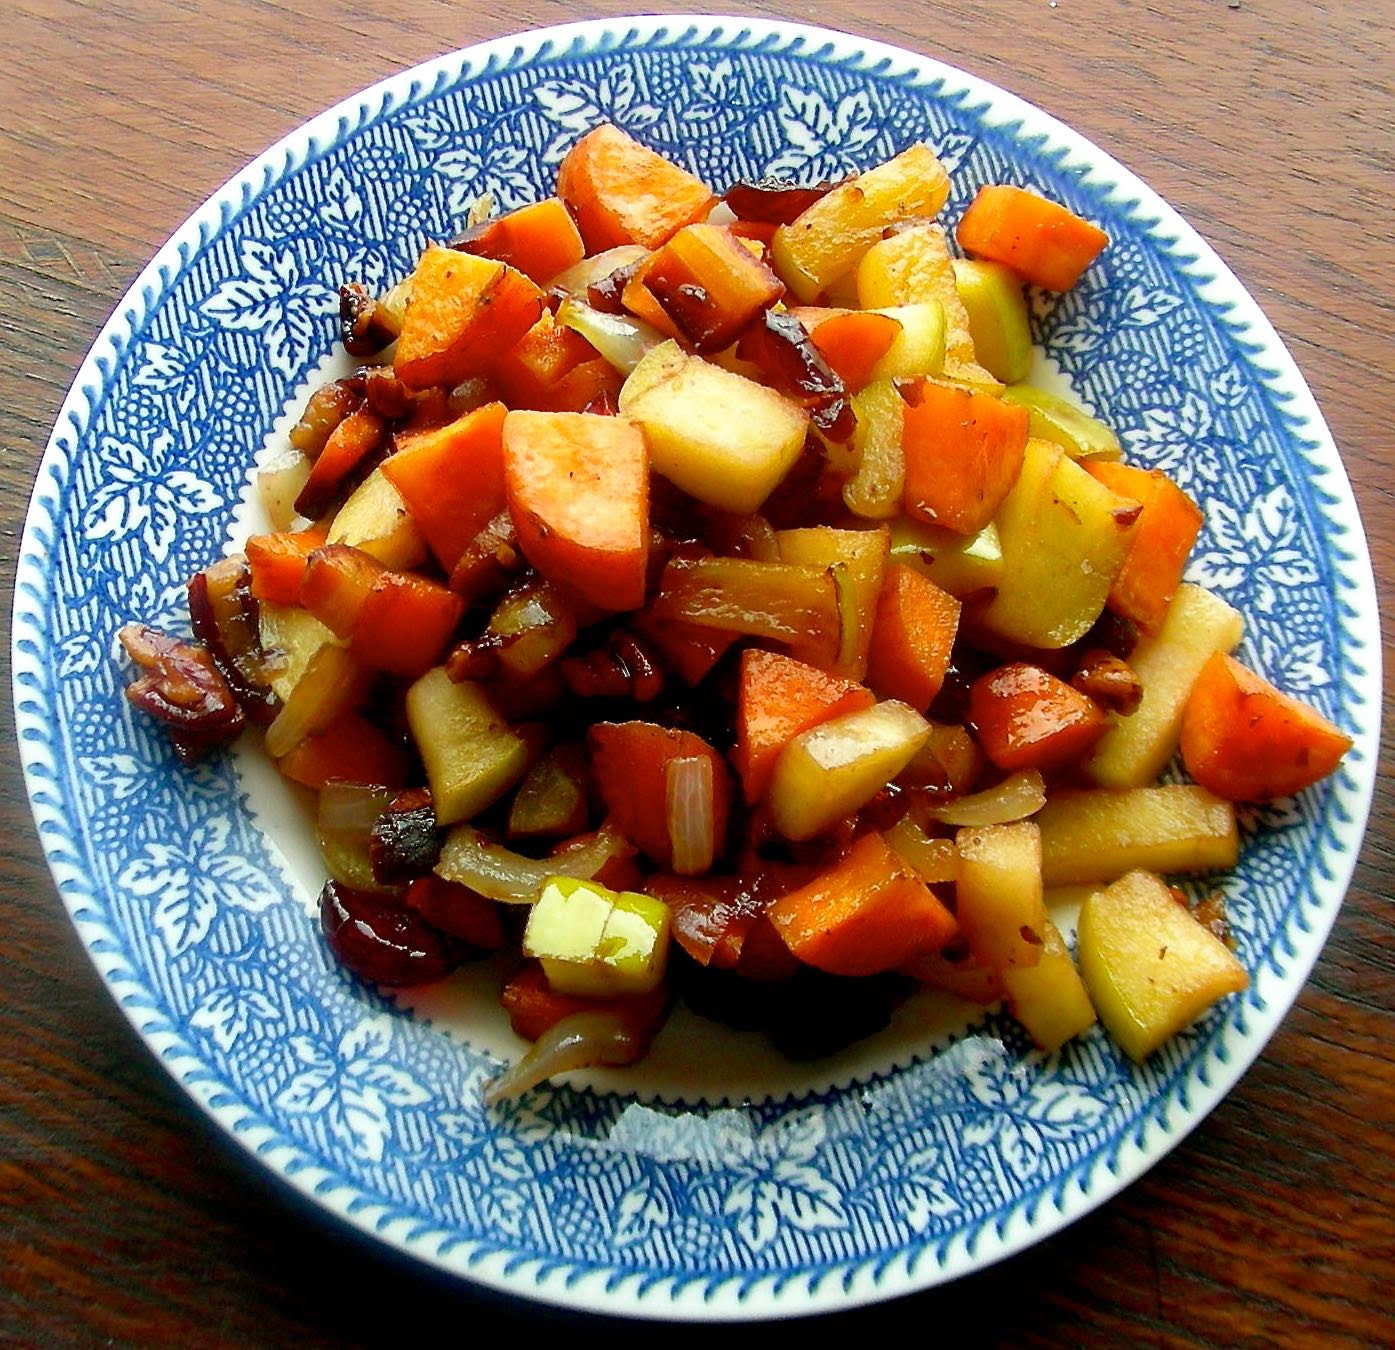 Sautéed Apples and Carrots with Roasted Pecans